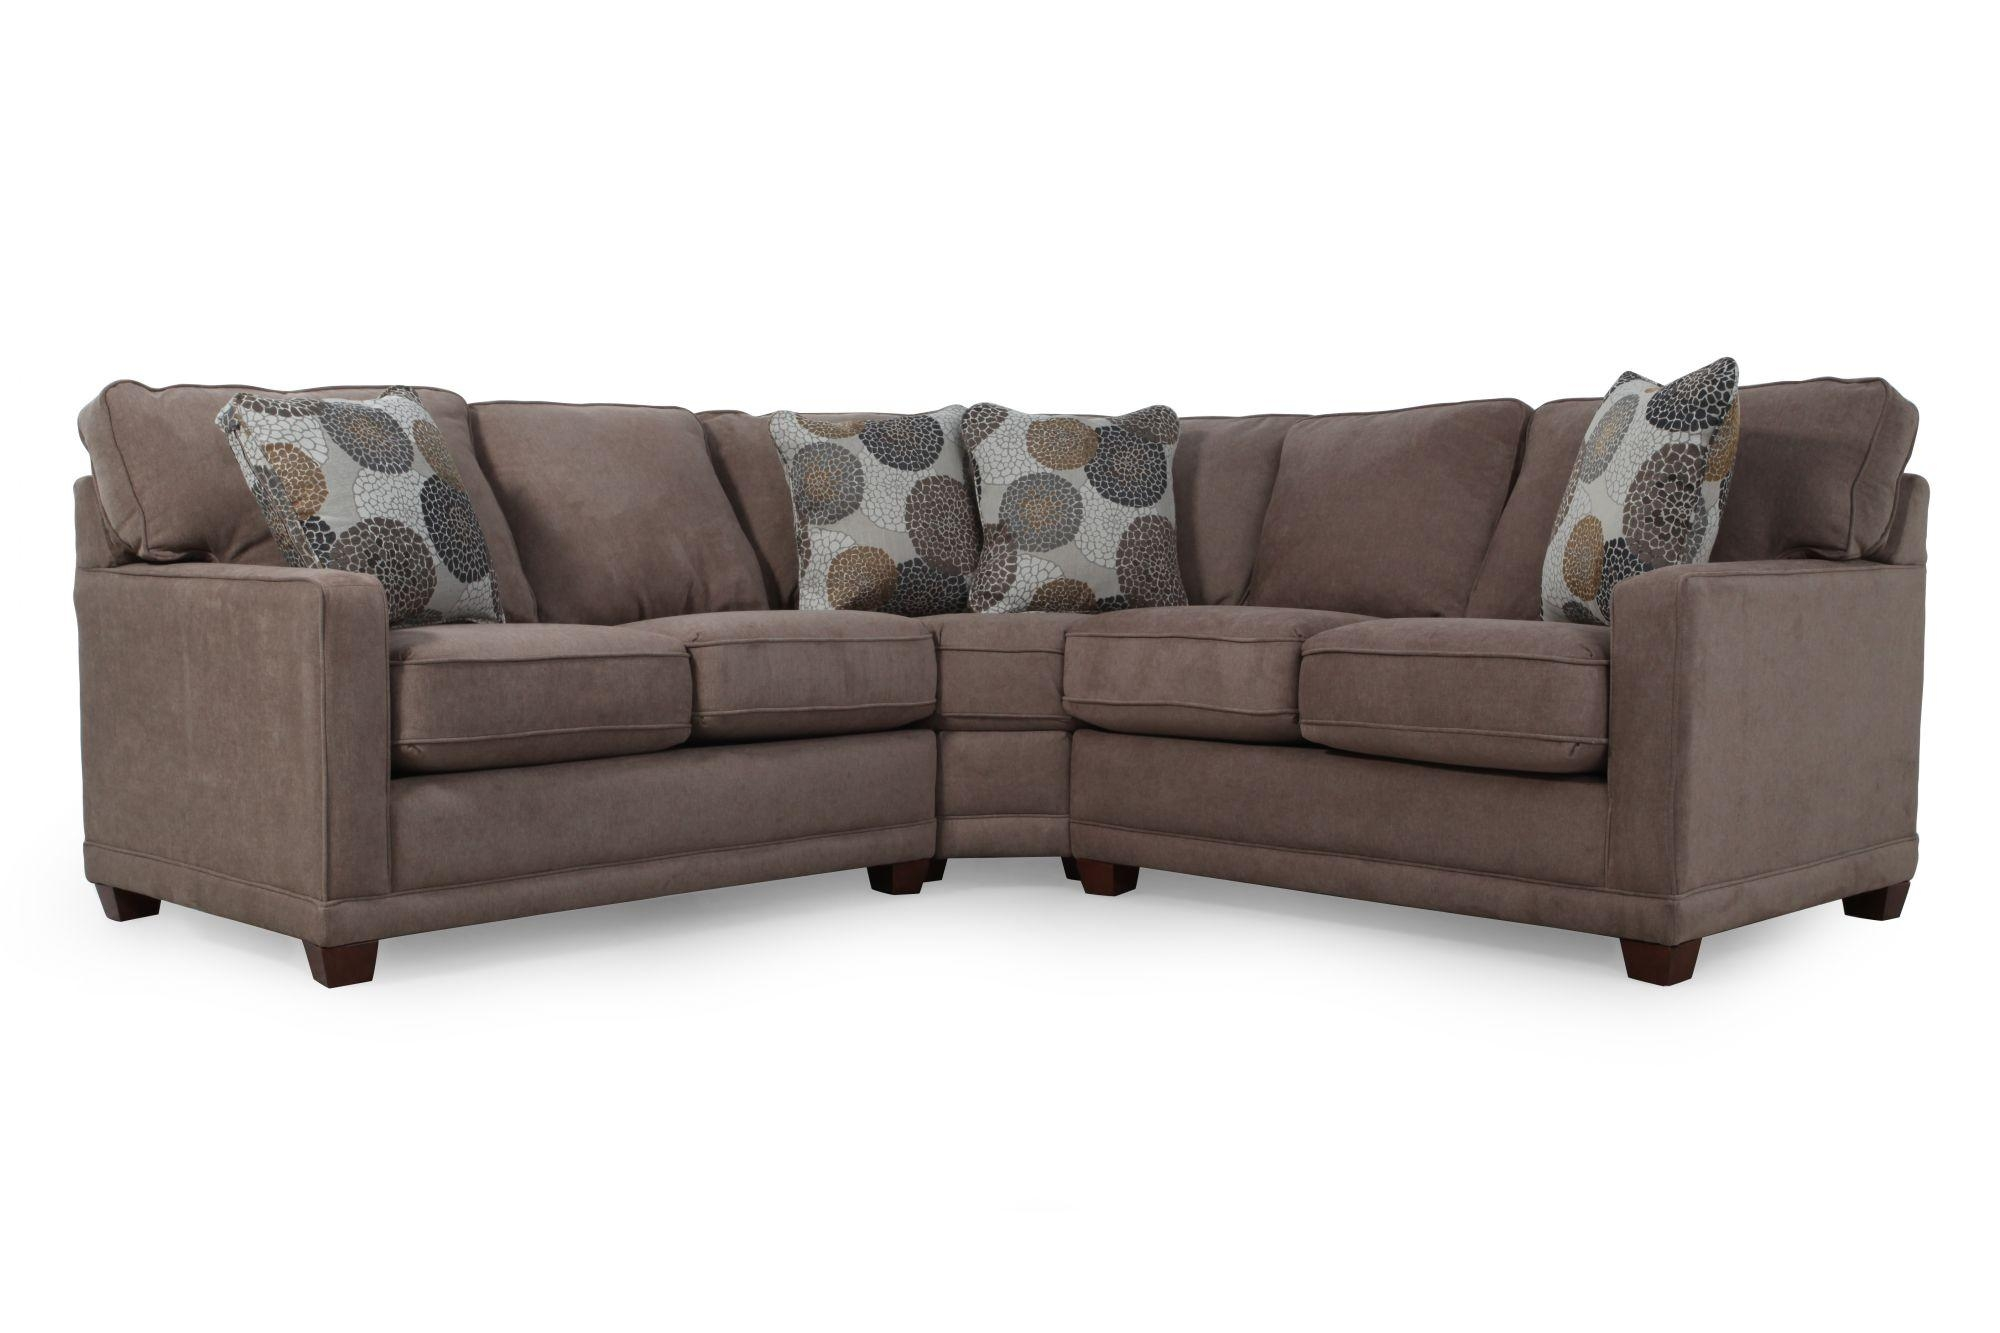 Furniture: Impressive Lazy Boy Sectional For Living Room Furniture Pertaining To Lazyboy Sectional (Image 5 of 20)